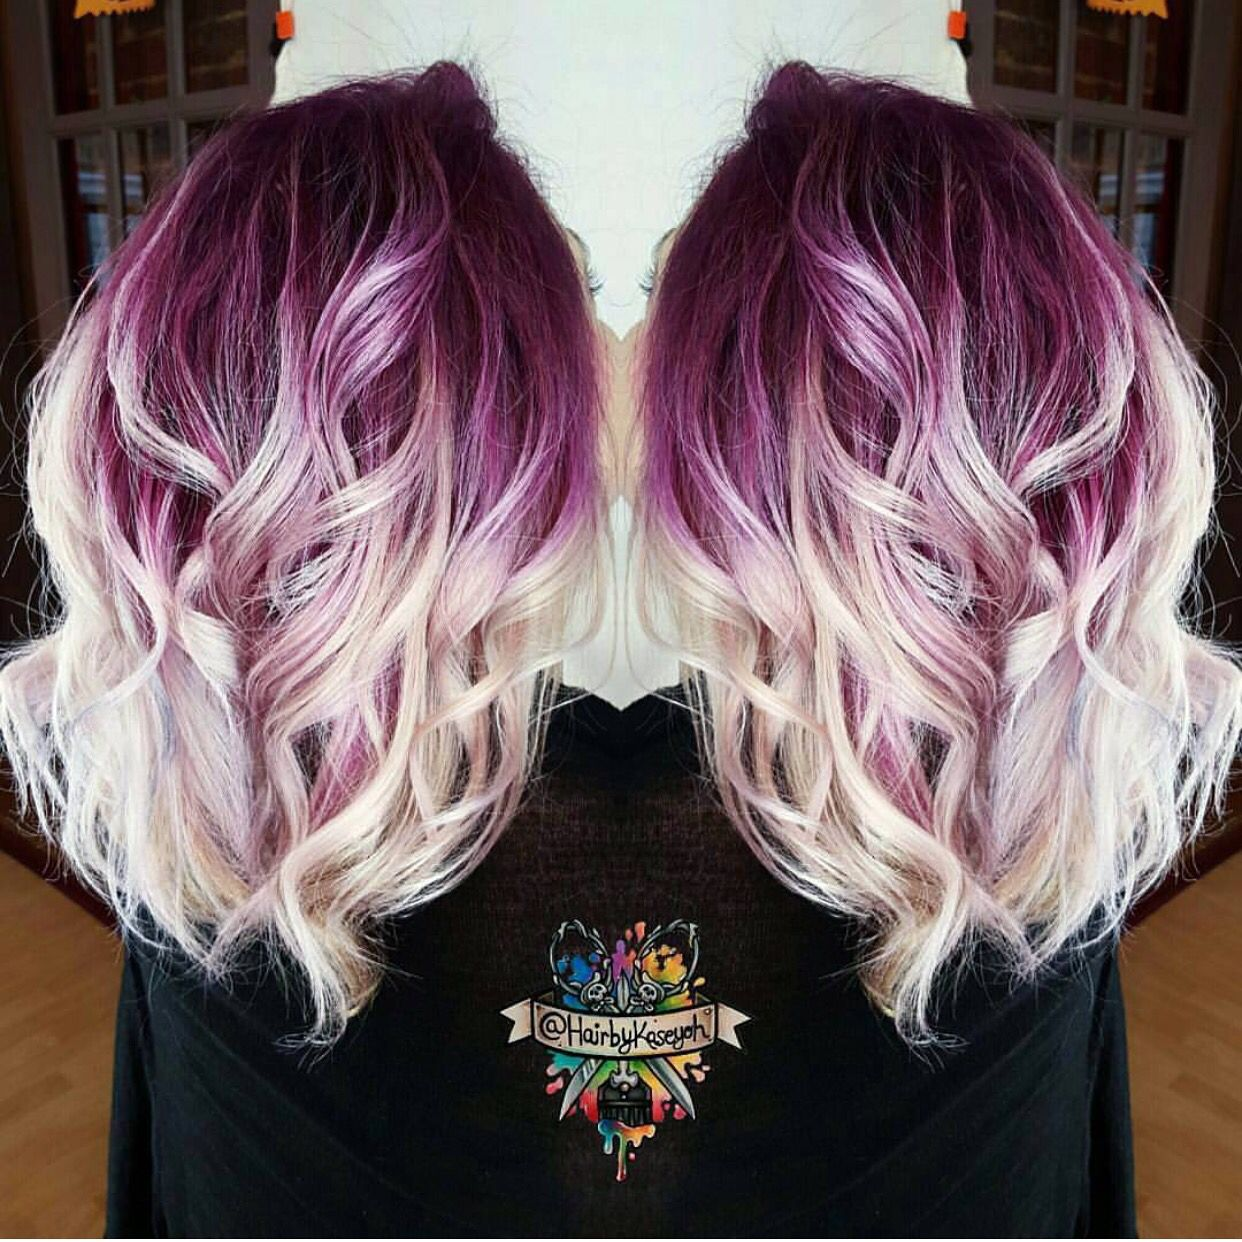 Plum purple hair color base with billowy white blonde hair by